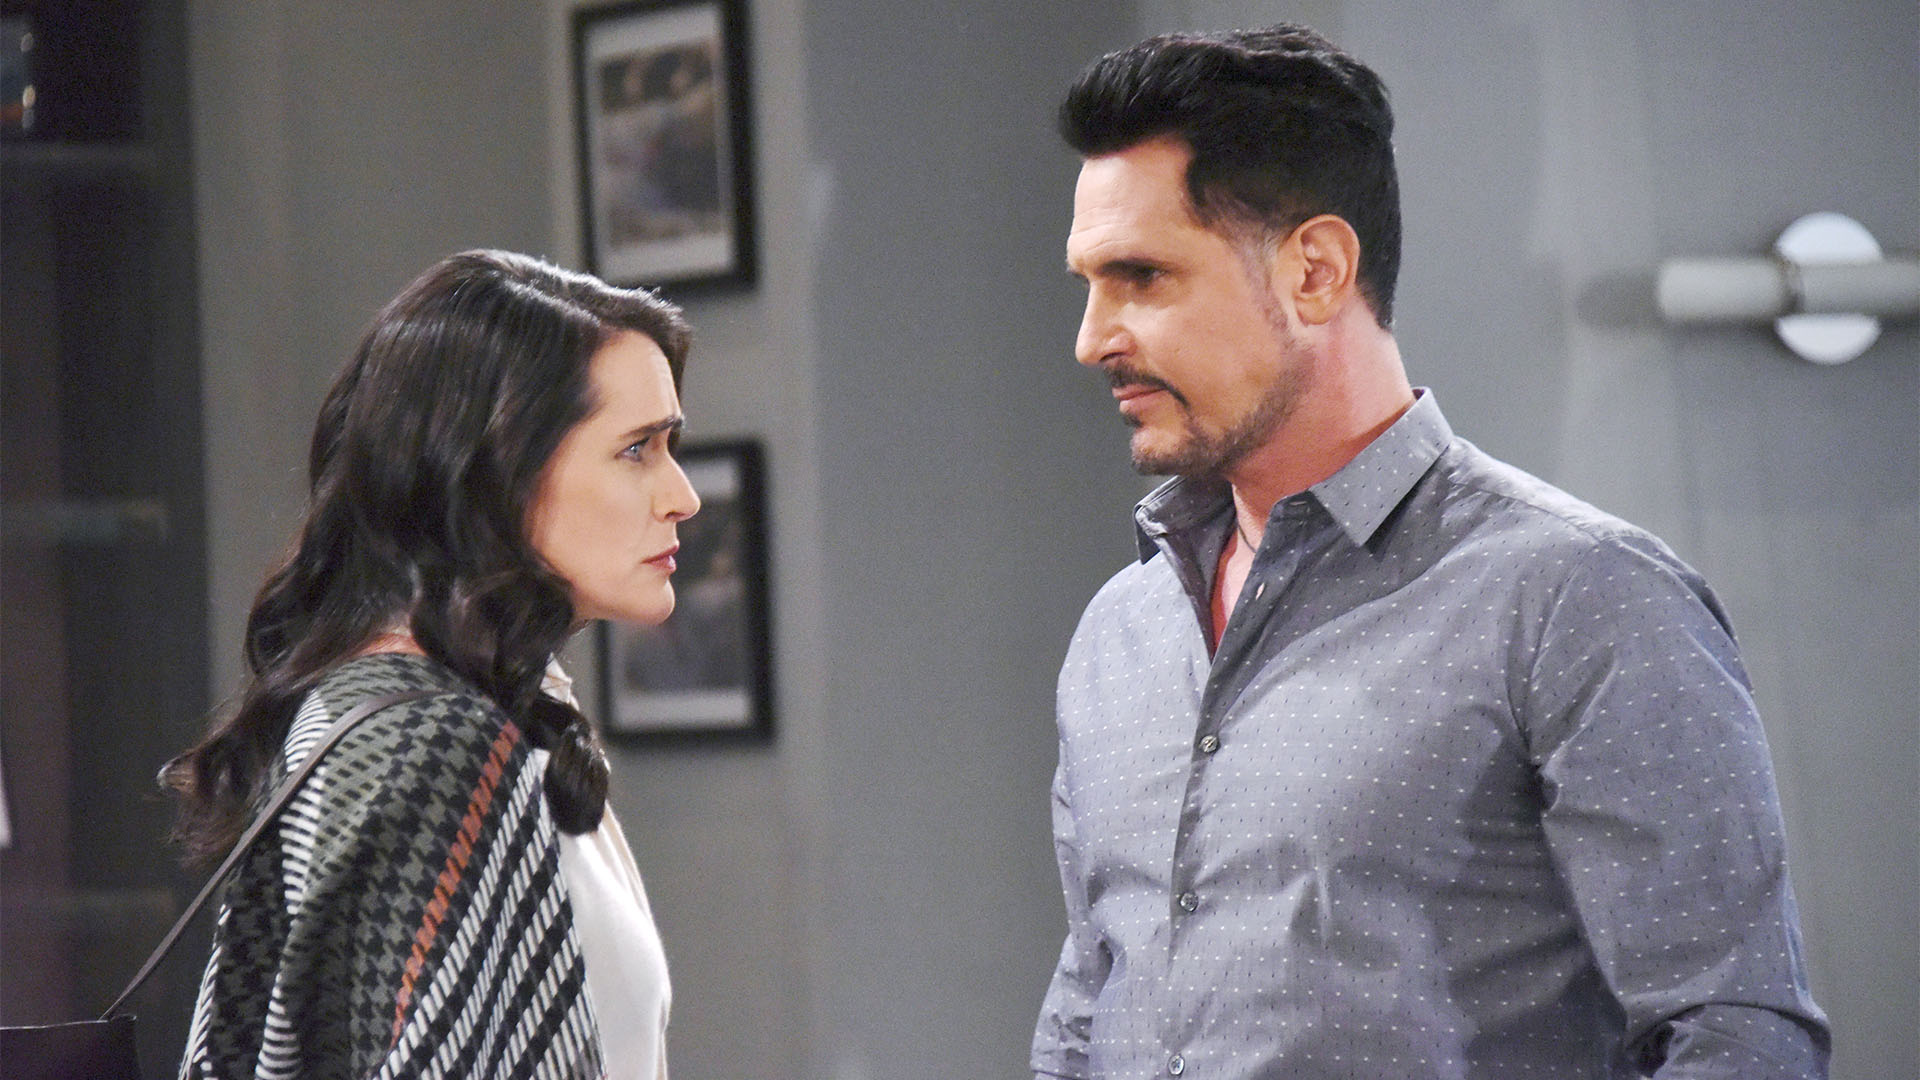 Quinn's dark side surfaces as she goes into protective mode of Wyatt against Bill.